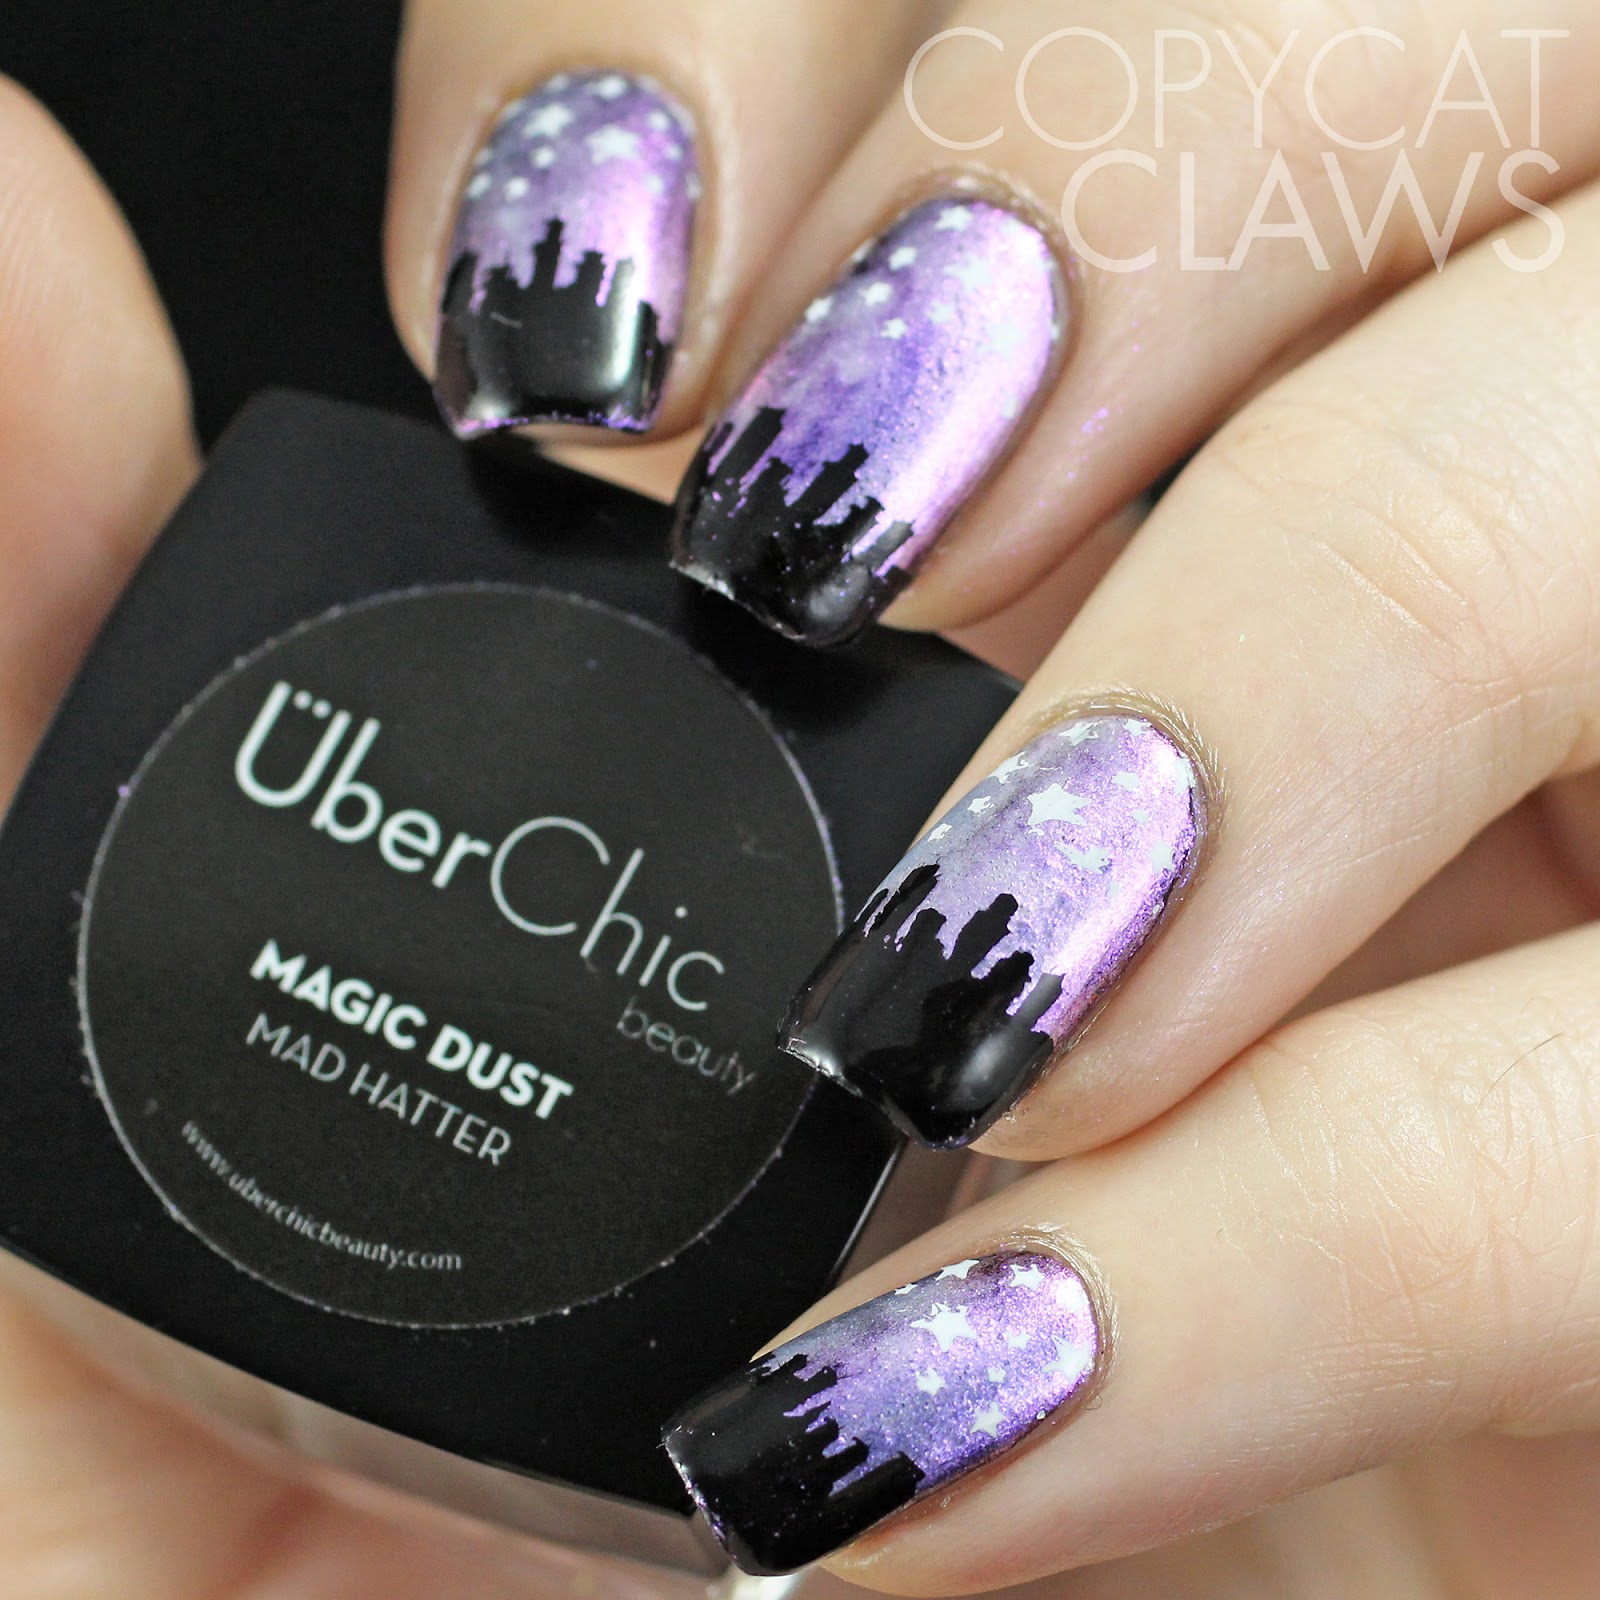 Copycat Claws: UberChic Beauty Magic Dust and Skyline Stamping